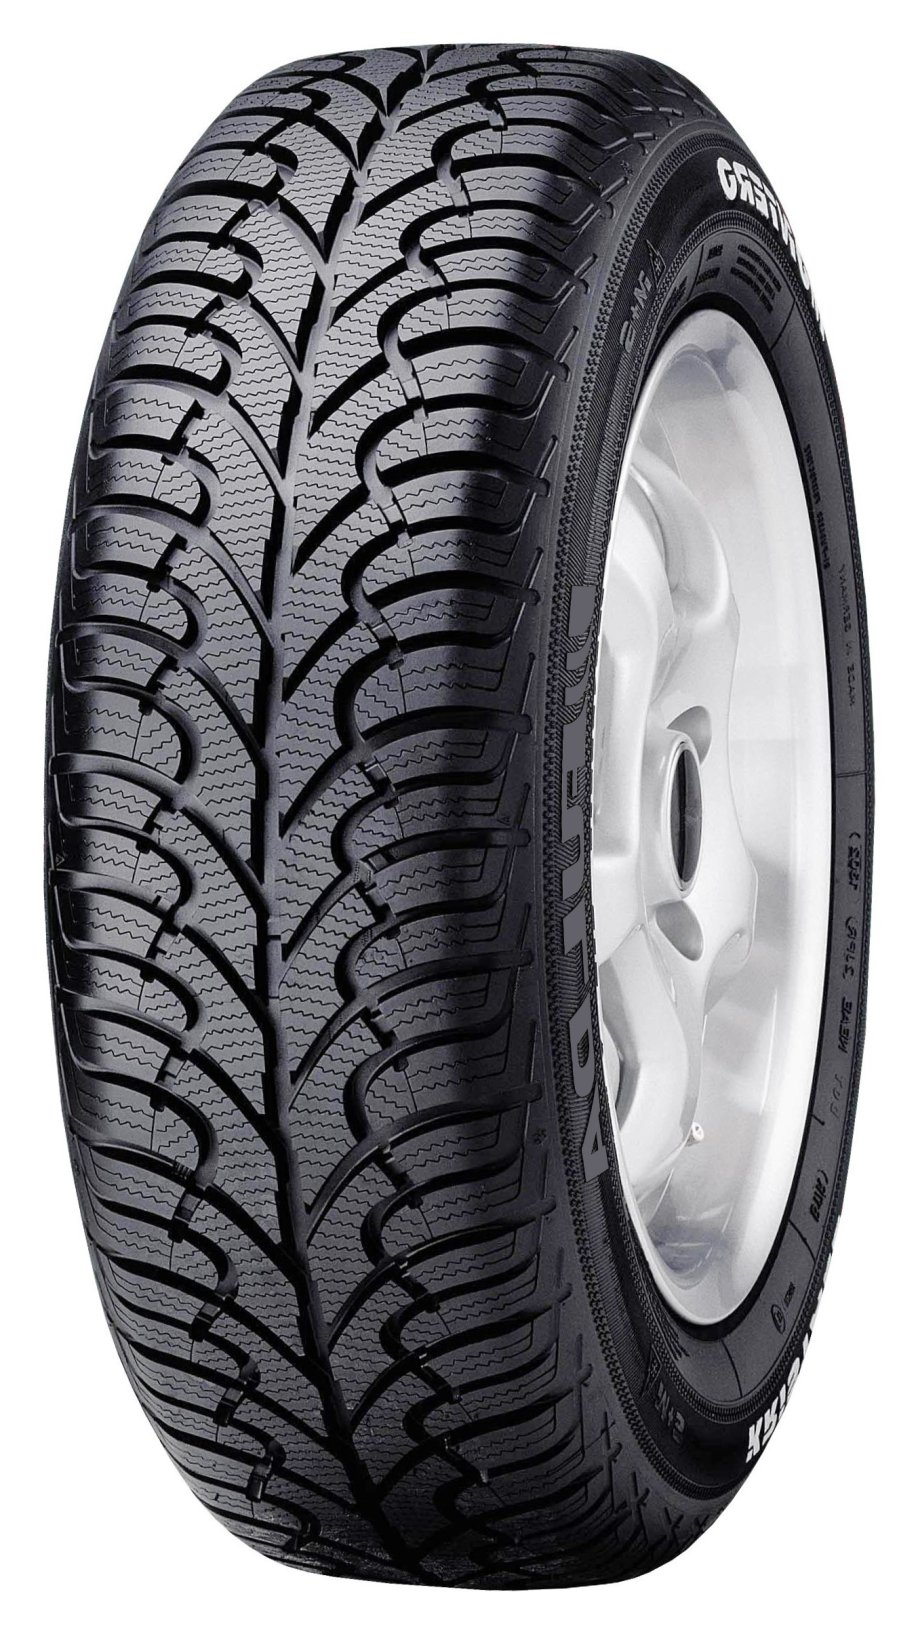 Gomme Nuove Fulda 175/65 R15 84T MONT2 M+S pneumatici nuovi Invernale